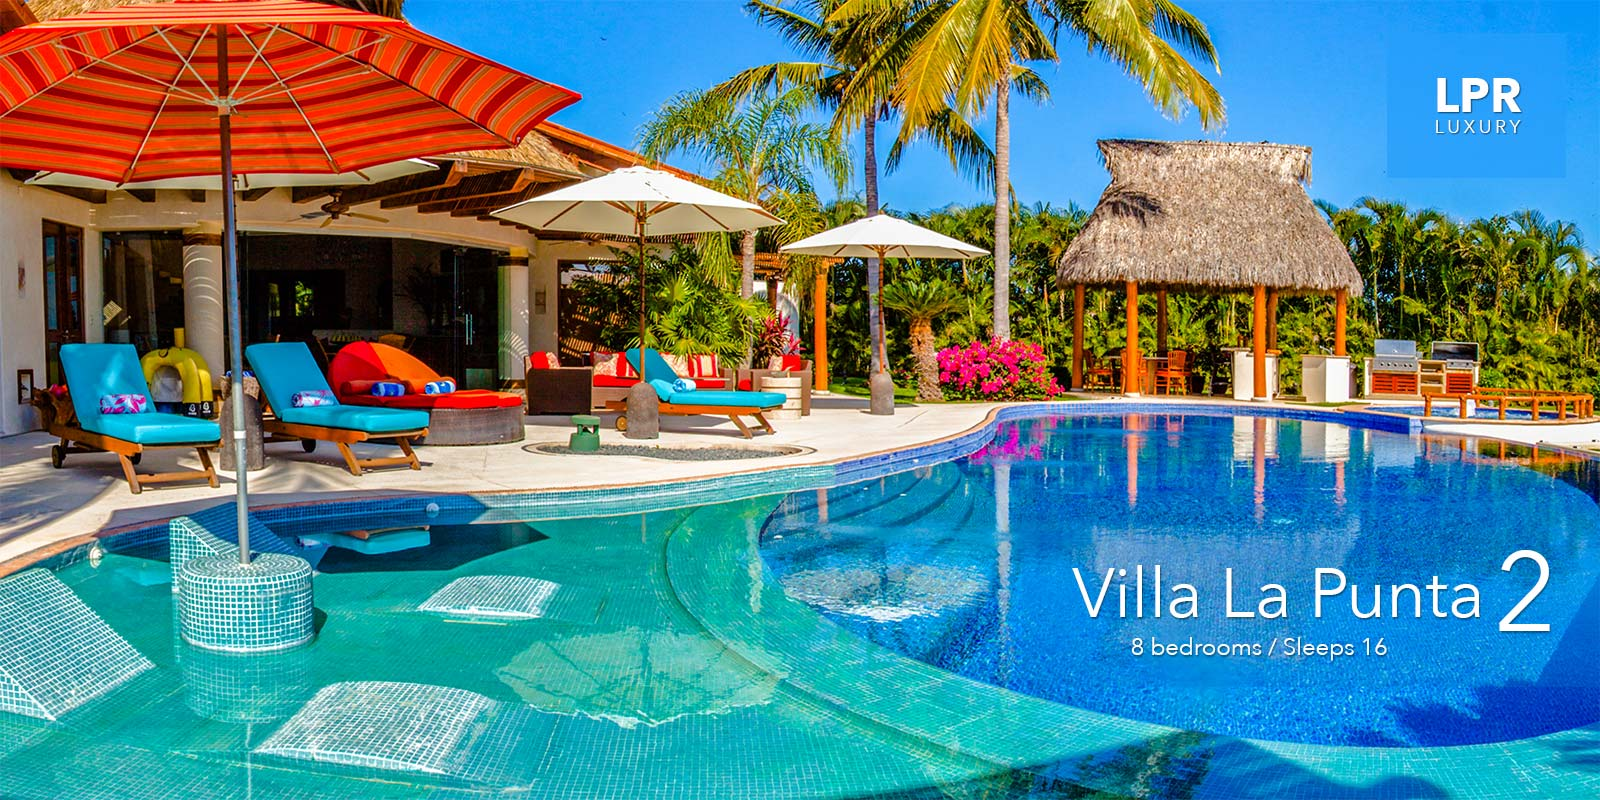 Villa La Punta 2 - Luxury Punta Mita Resort Real Estate for Sale - North of Puerto Vallarta, Mexico